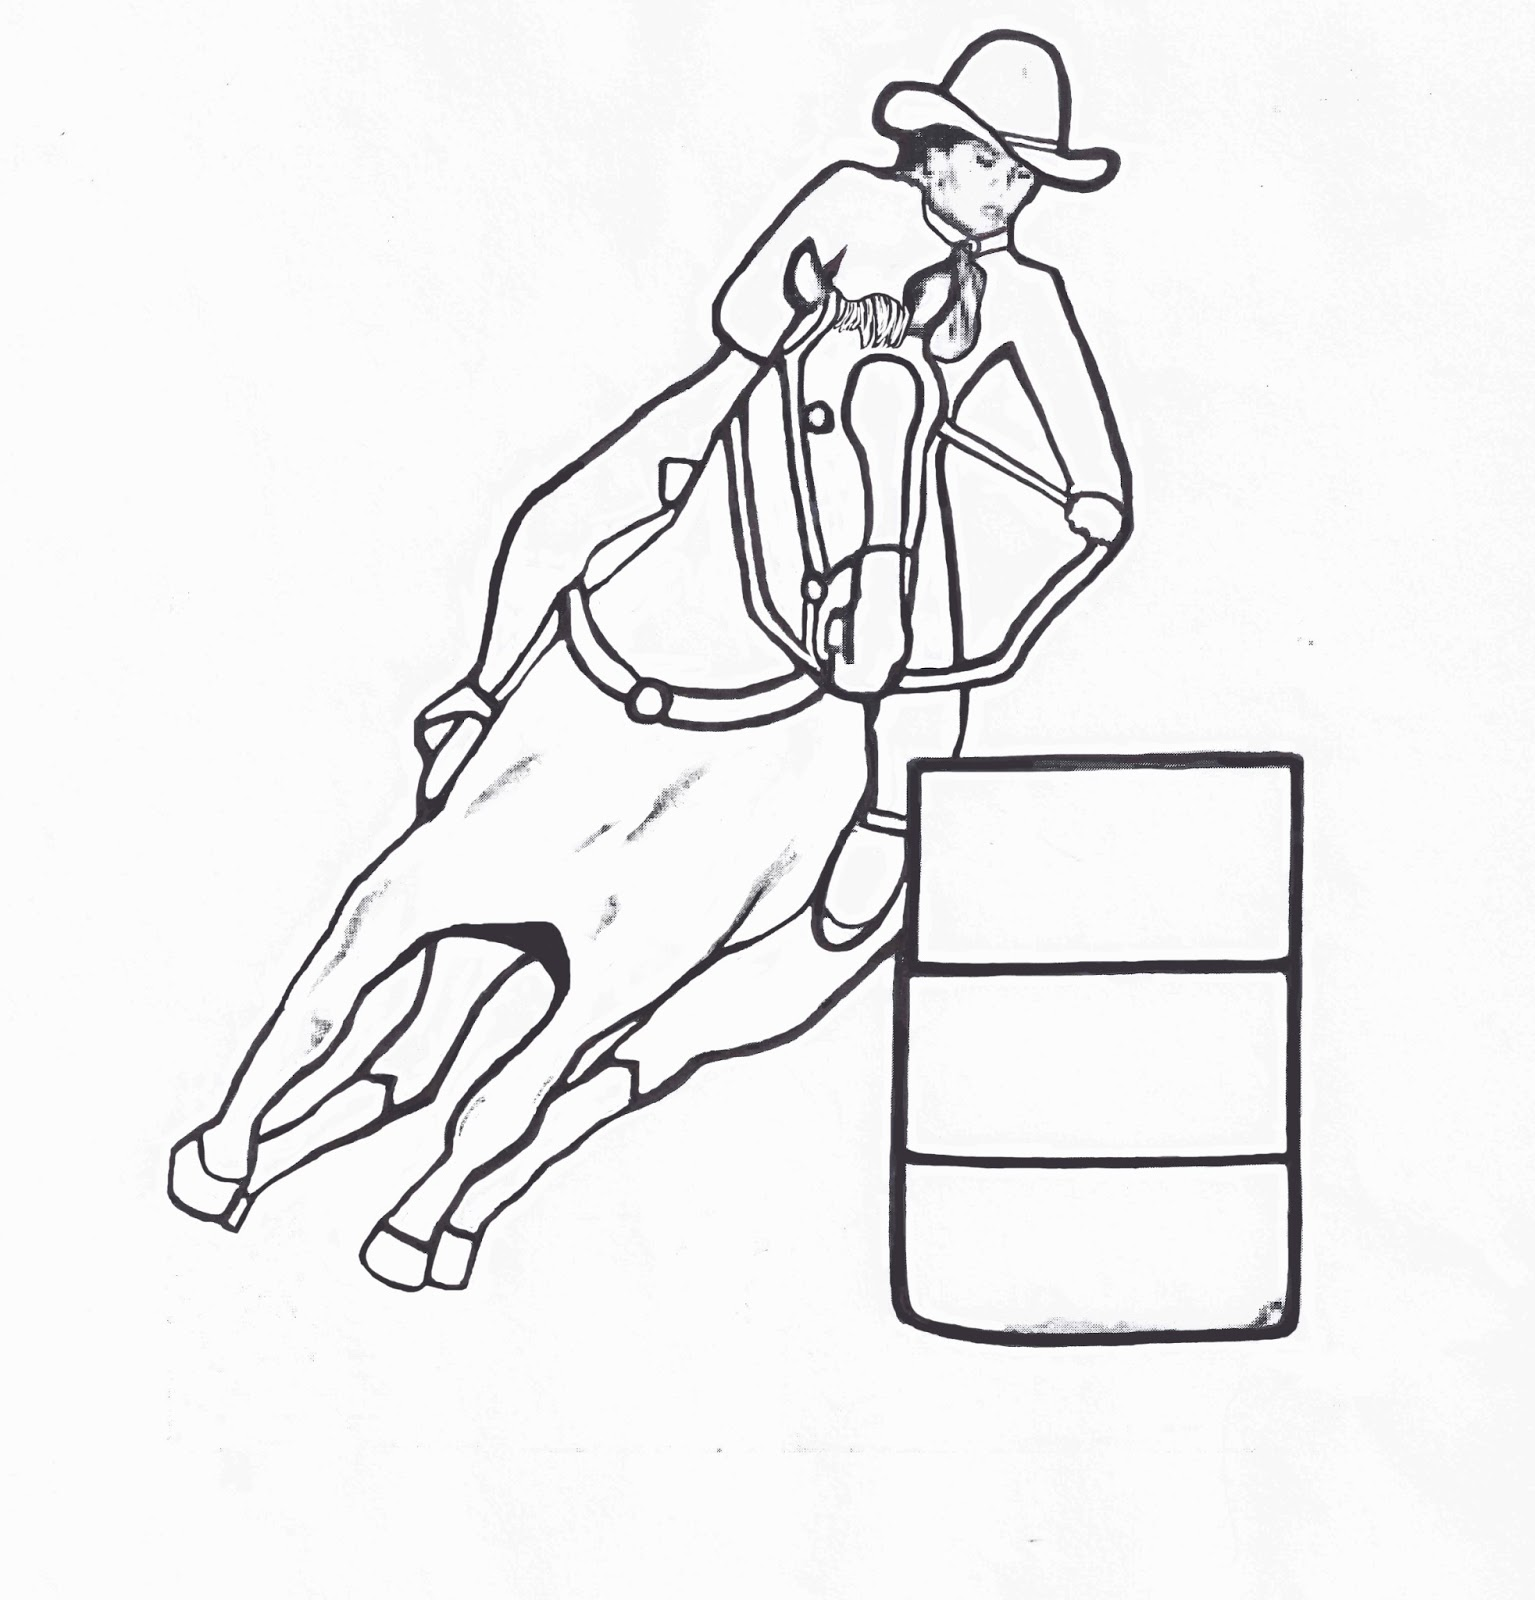 Free barrel racing coloring pages coloring page for Coloring pages of horses barrel racing